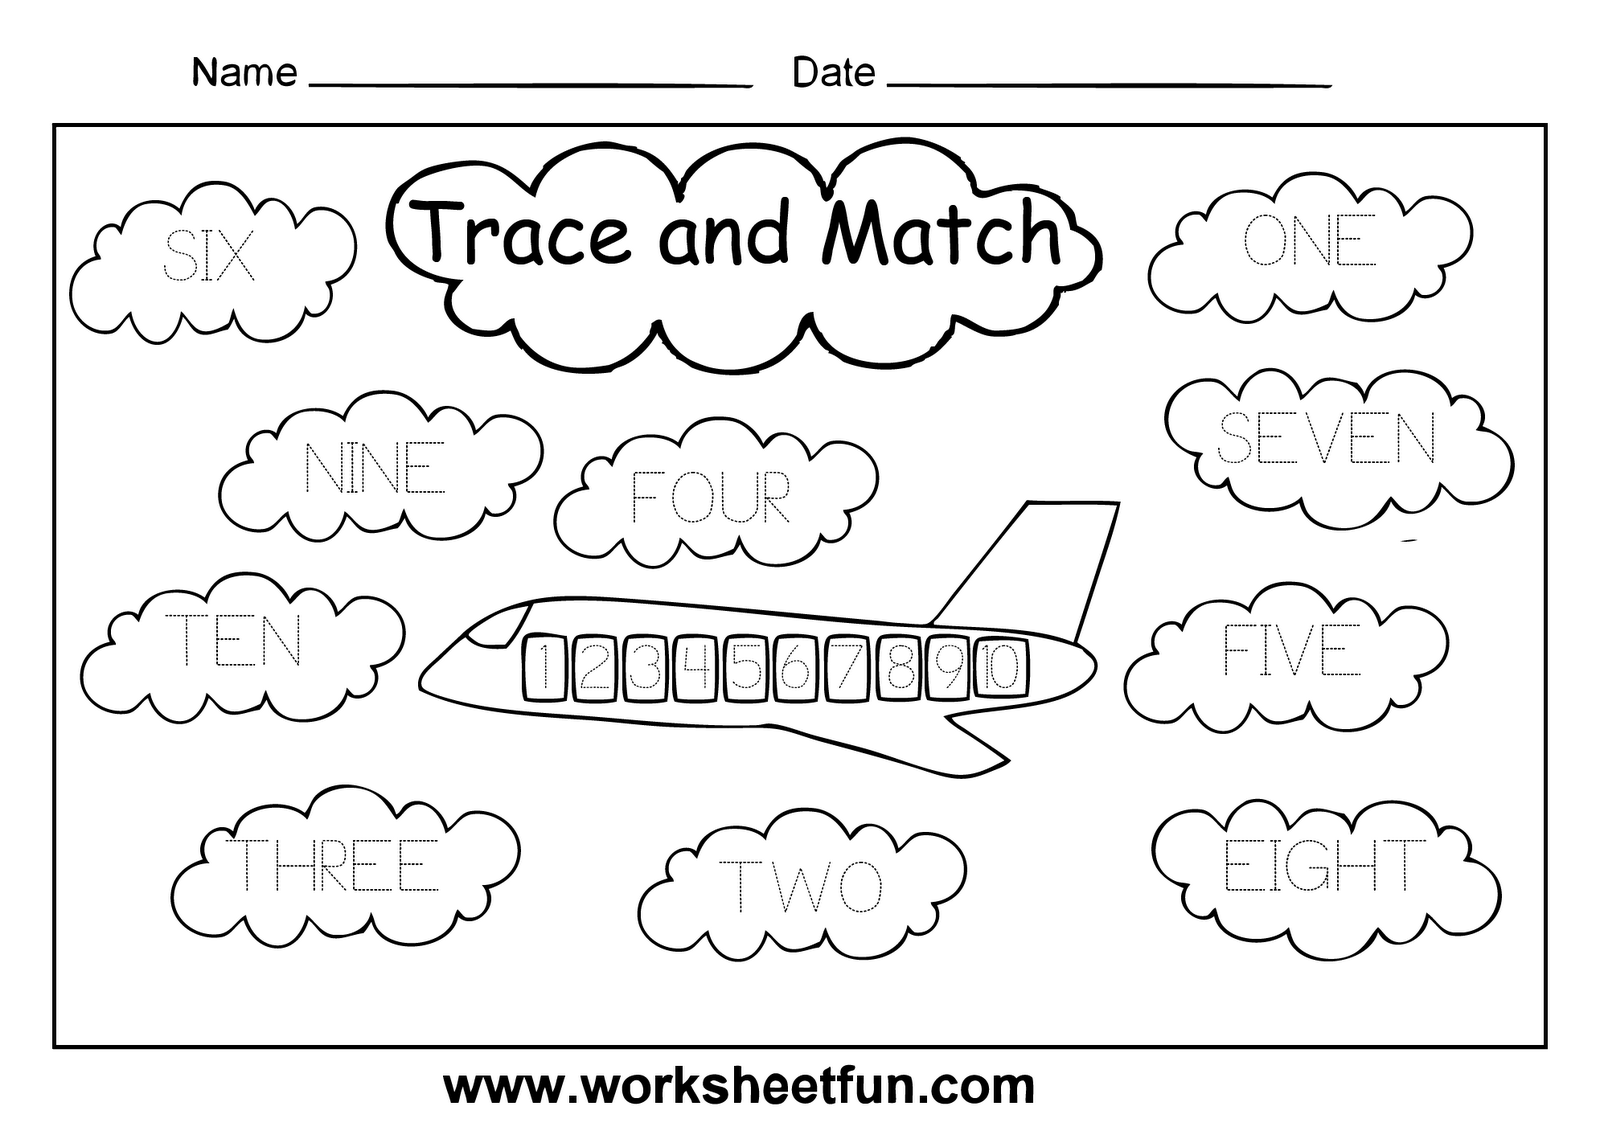 Weirdmailus  Unusual Worksheet Numbers    Reocurent With Outstanding Times Tables Challenge Worksheet Besides D Grade Math Worksheets Furthermore Median Mean Mode Worksheet With Enchanting Second Grade Pronoun Worksheets Also Writing A To Z Worksheet In Addition Scientific Worksheet And Middle School Math Worksheets Th Grade As Well As Friction For Kids Worksheets Additionally Labeling Worksheets From Reocurentcom With Weirdmailus  Outstanding Worksheet Numbers    Reocurent With Enchanting Times Tables Challenge Worksheet Besides D Grade Math Worksheets Furthermore Median Mean Mode Worksheet And Unusual Second Grade Pronoun Worksheets Also Writing A To Z Worksheet In Addition Scientific Worksheet From Reocurentcom